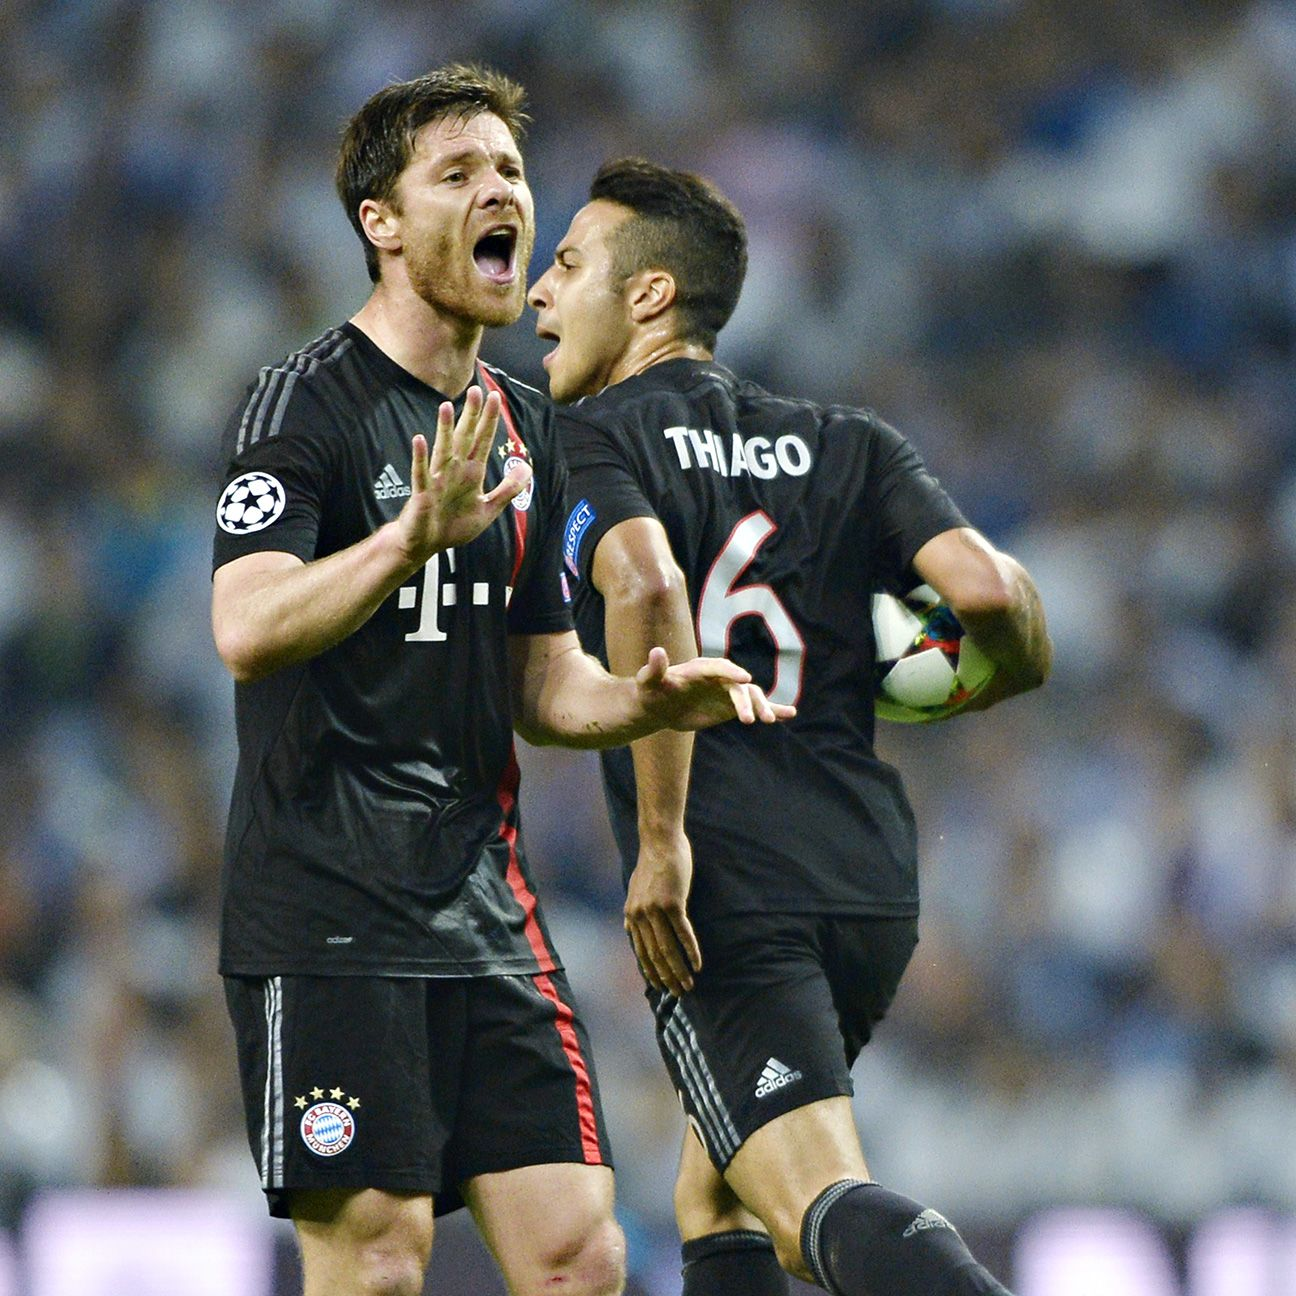 Xabi Alonso and Bayern have left themselves plenty of work to do in next week's second leg in Germany.